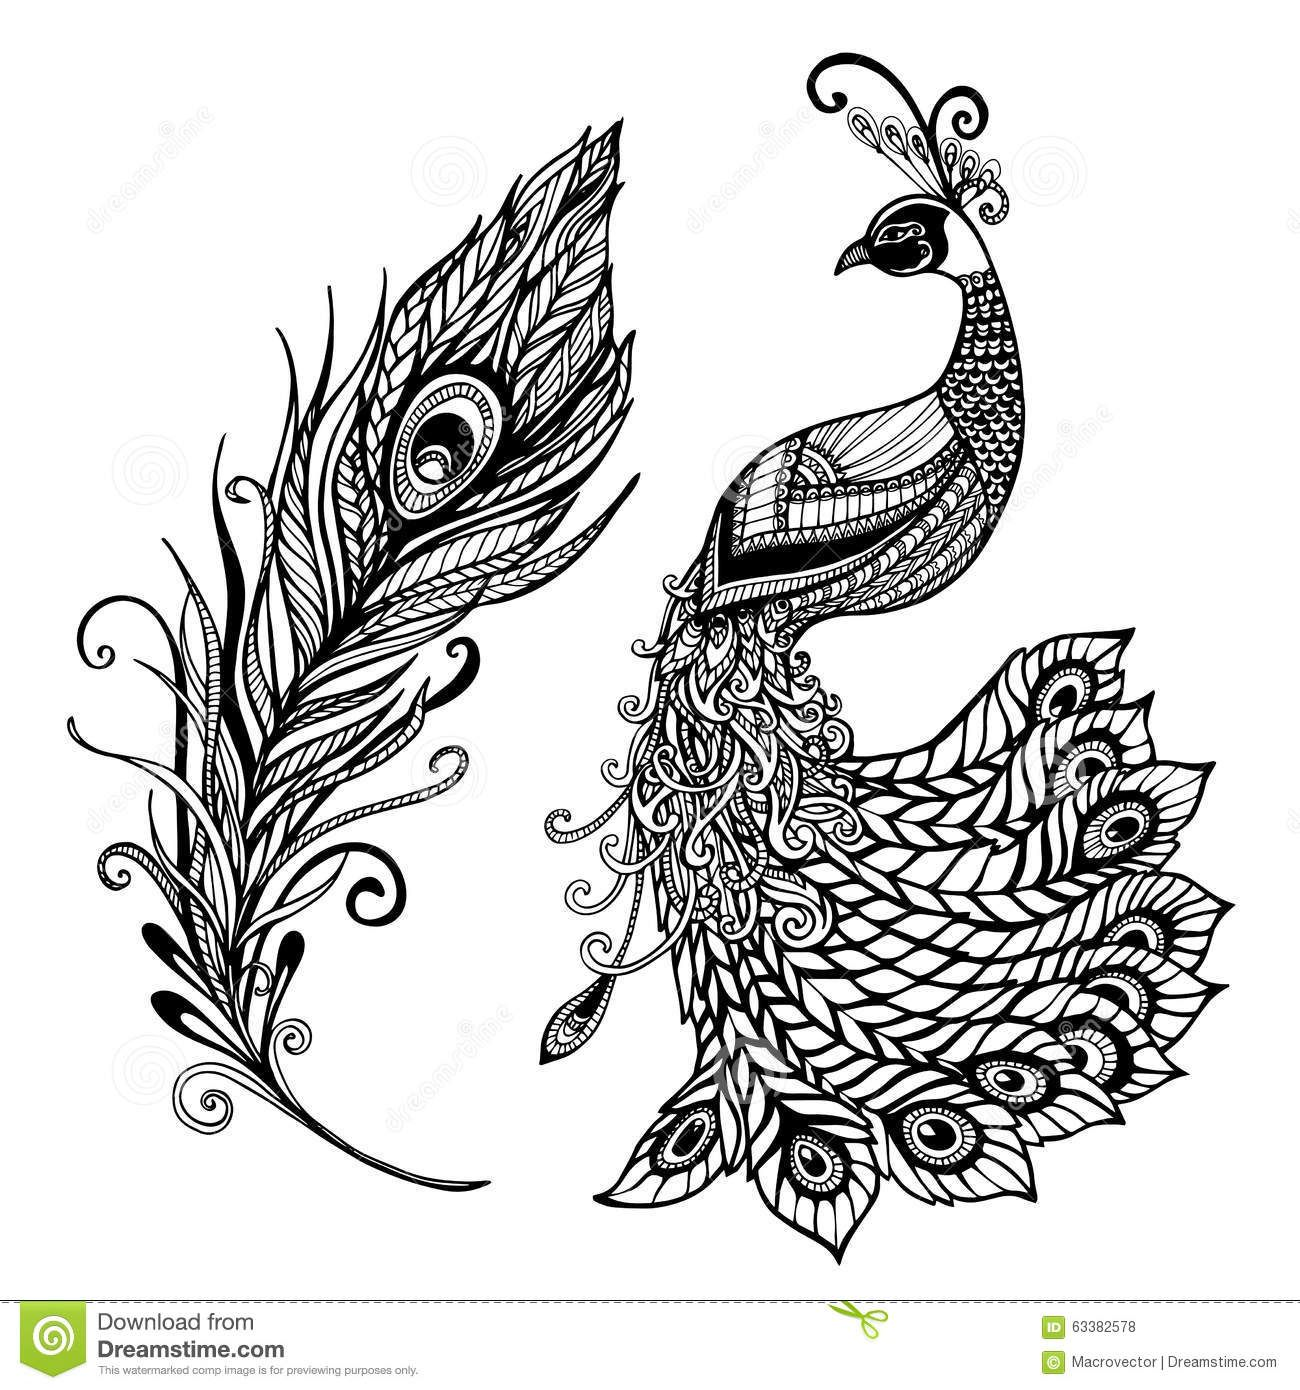 Free coloring pages of peacock feathers coloring everyday printable - Peacock Feather Black Background Stock Photos Images Pictures